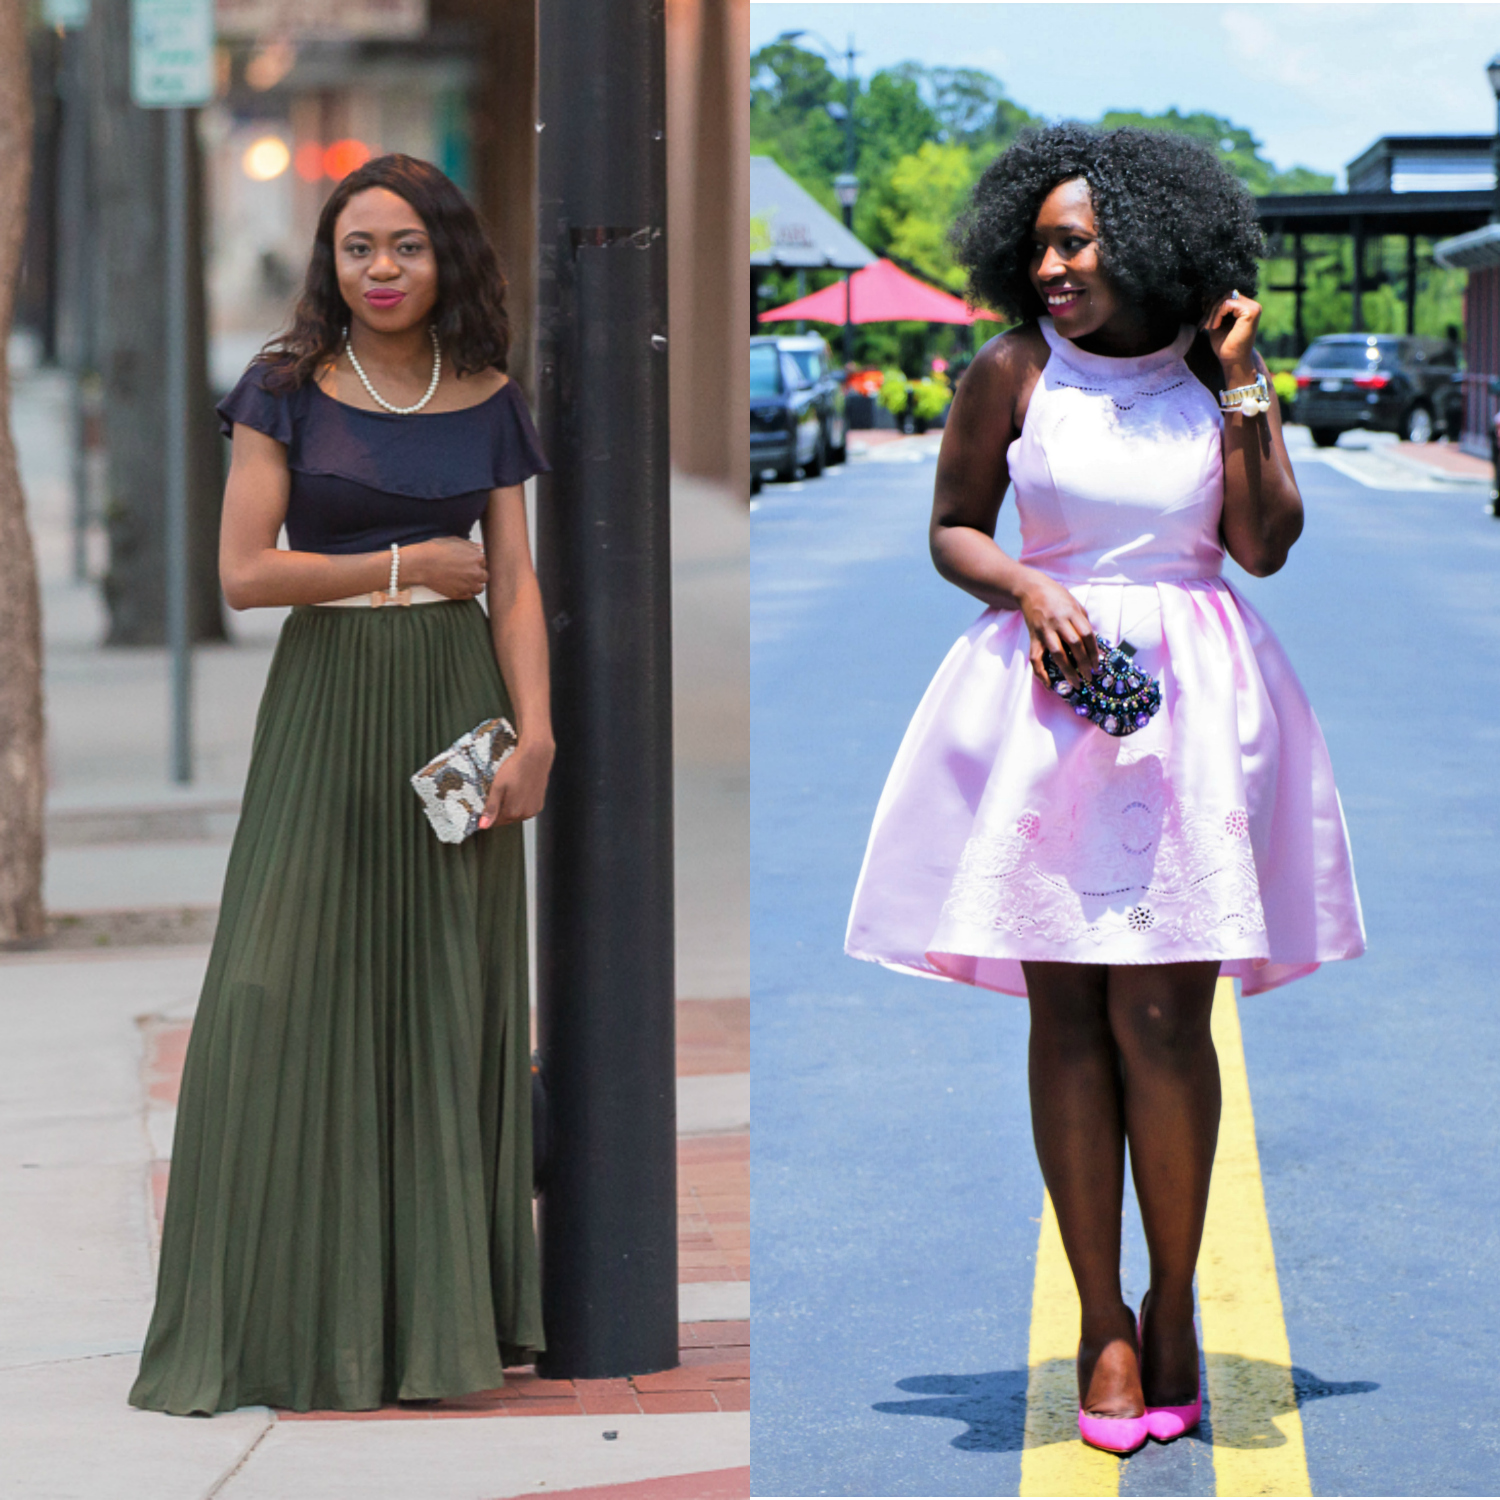 What To Wear To A Wedding: Lovely Wedding Guest Outfit Ideas